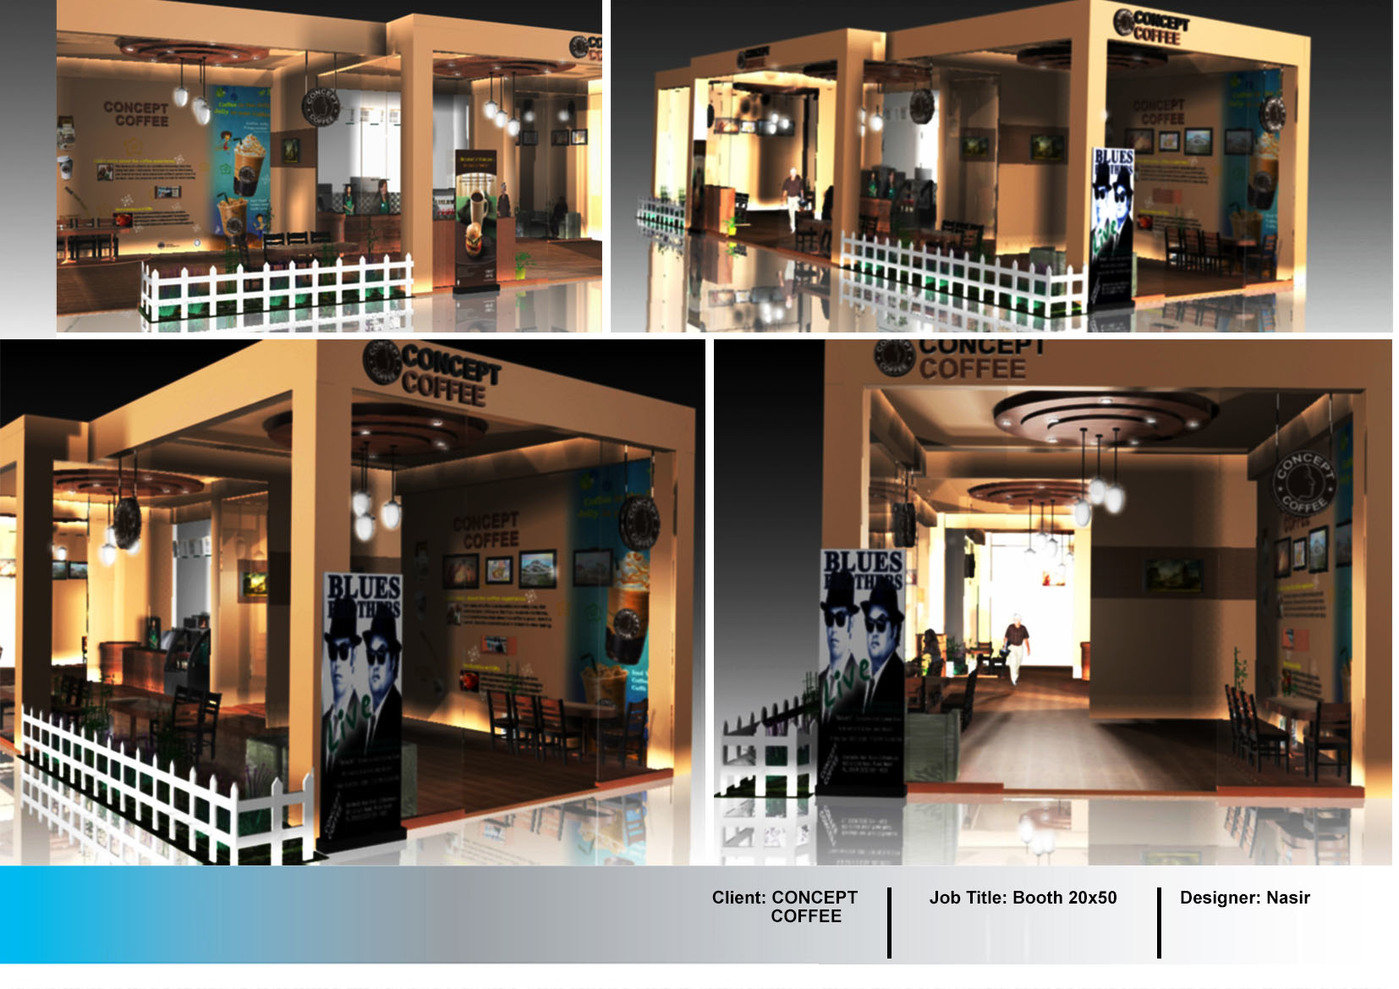 Property Exhibition Booth Design : Booth design by nasir uddin at coroflot